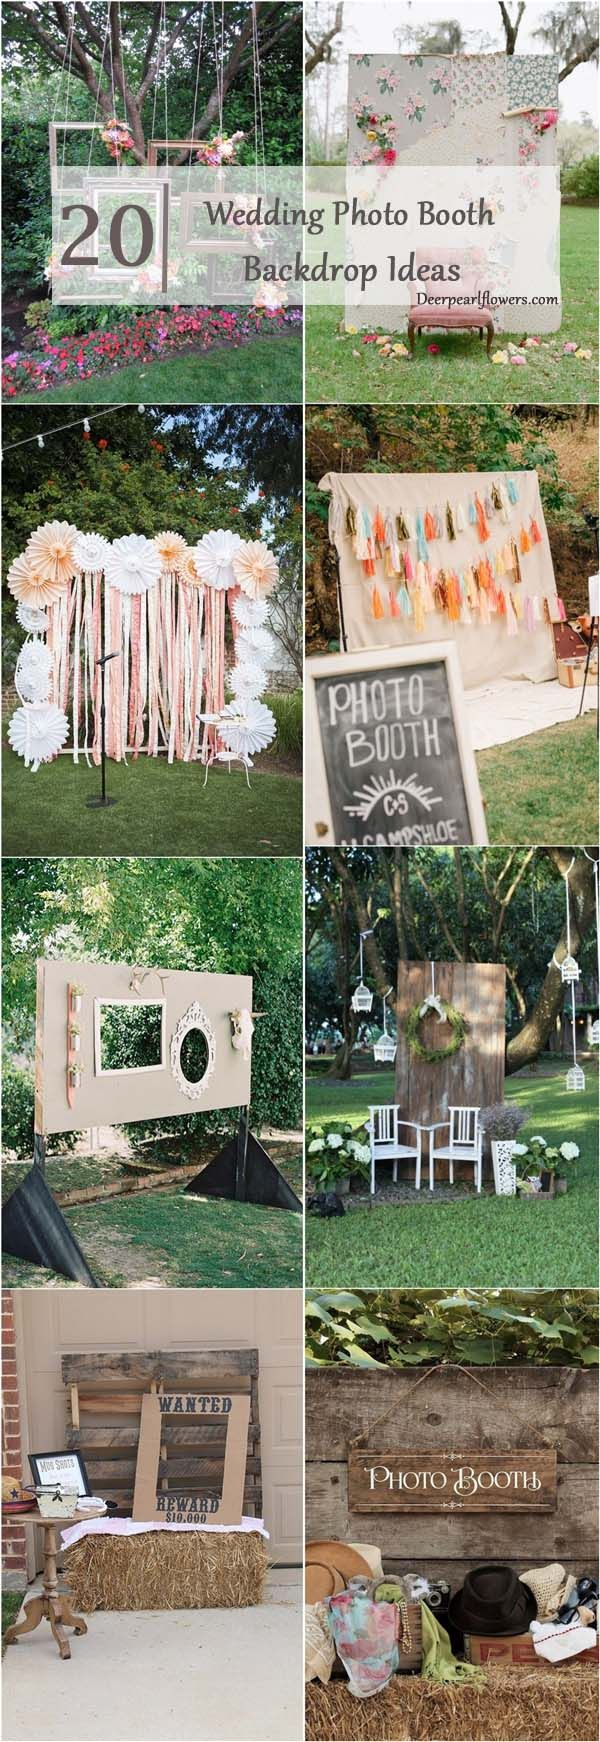 20 brilliant wedding photo booth ideas booth ideas photo booth wedding photo booth backdrop ideas httpdeerpearlflowersbrilliant wedding photo booth ideas solutioingenieria Images